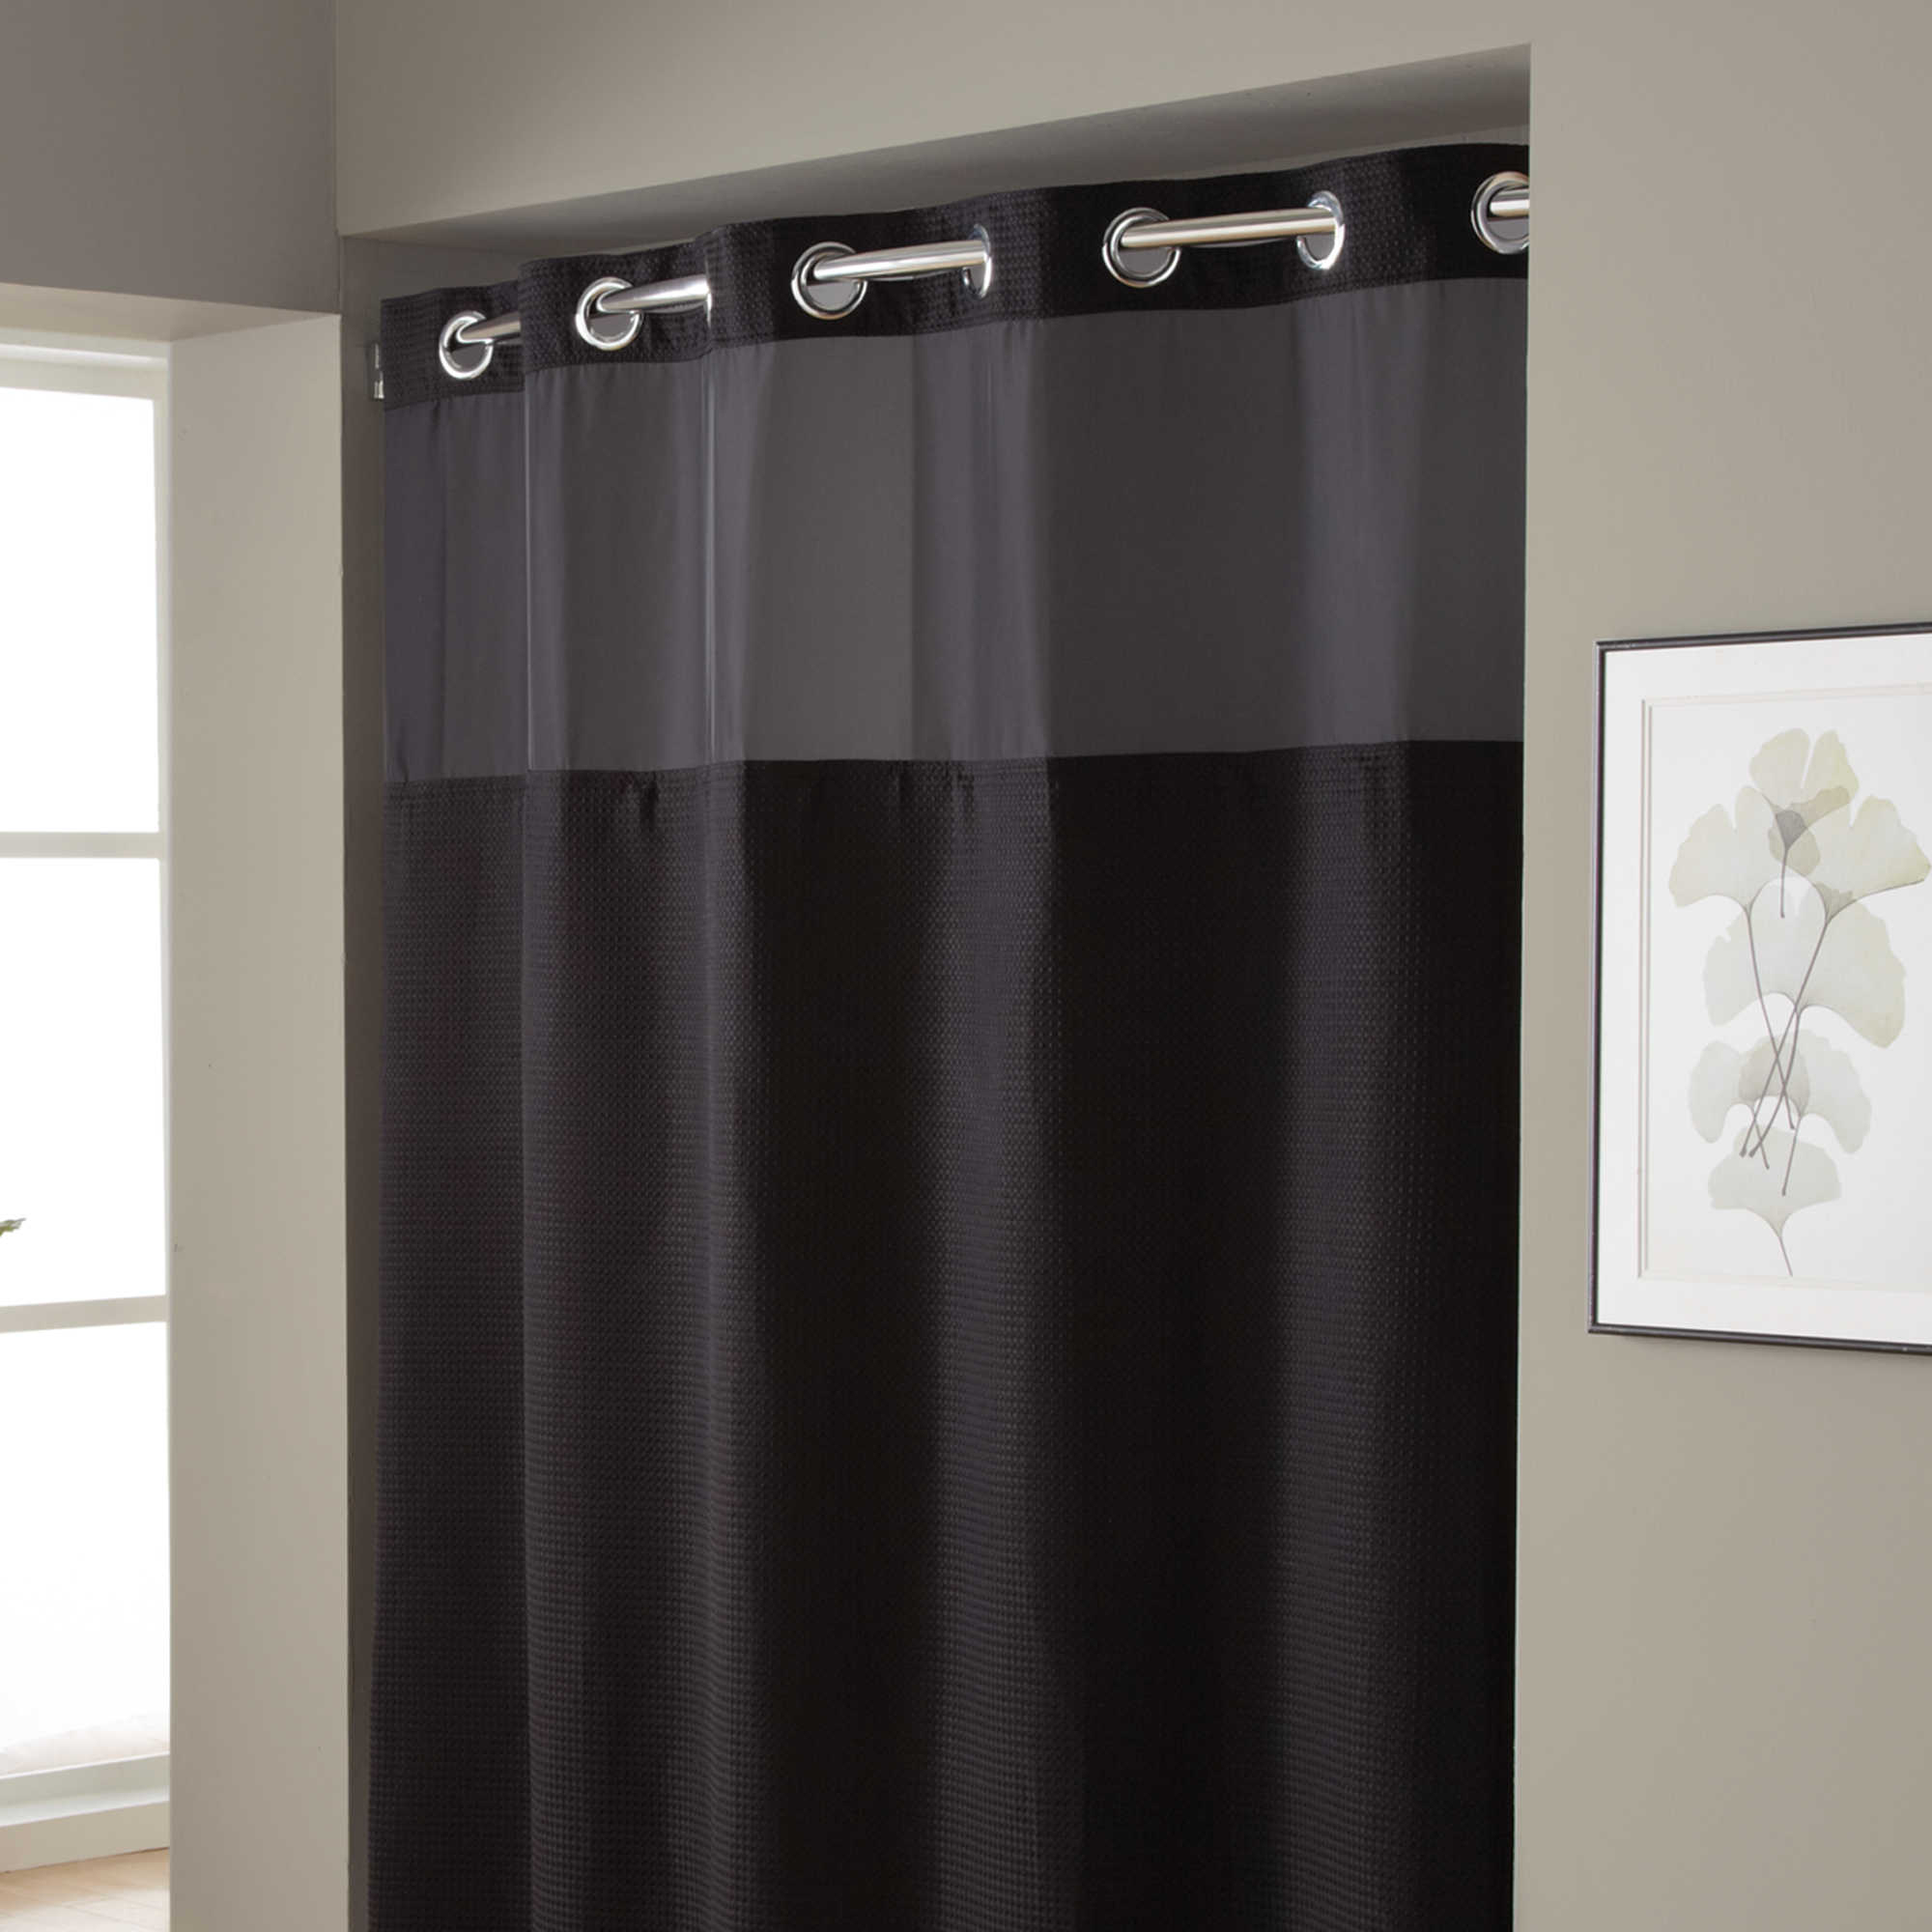 Hookless Shower Curtain Extra Long • Shower Curtains Ideas